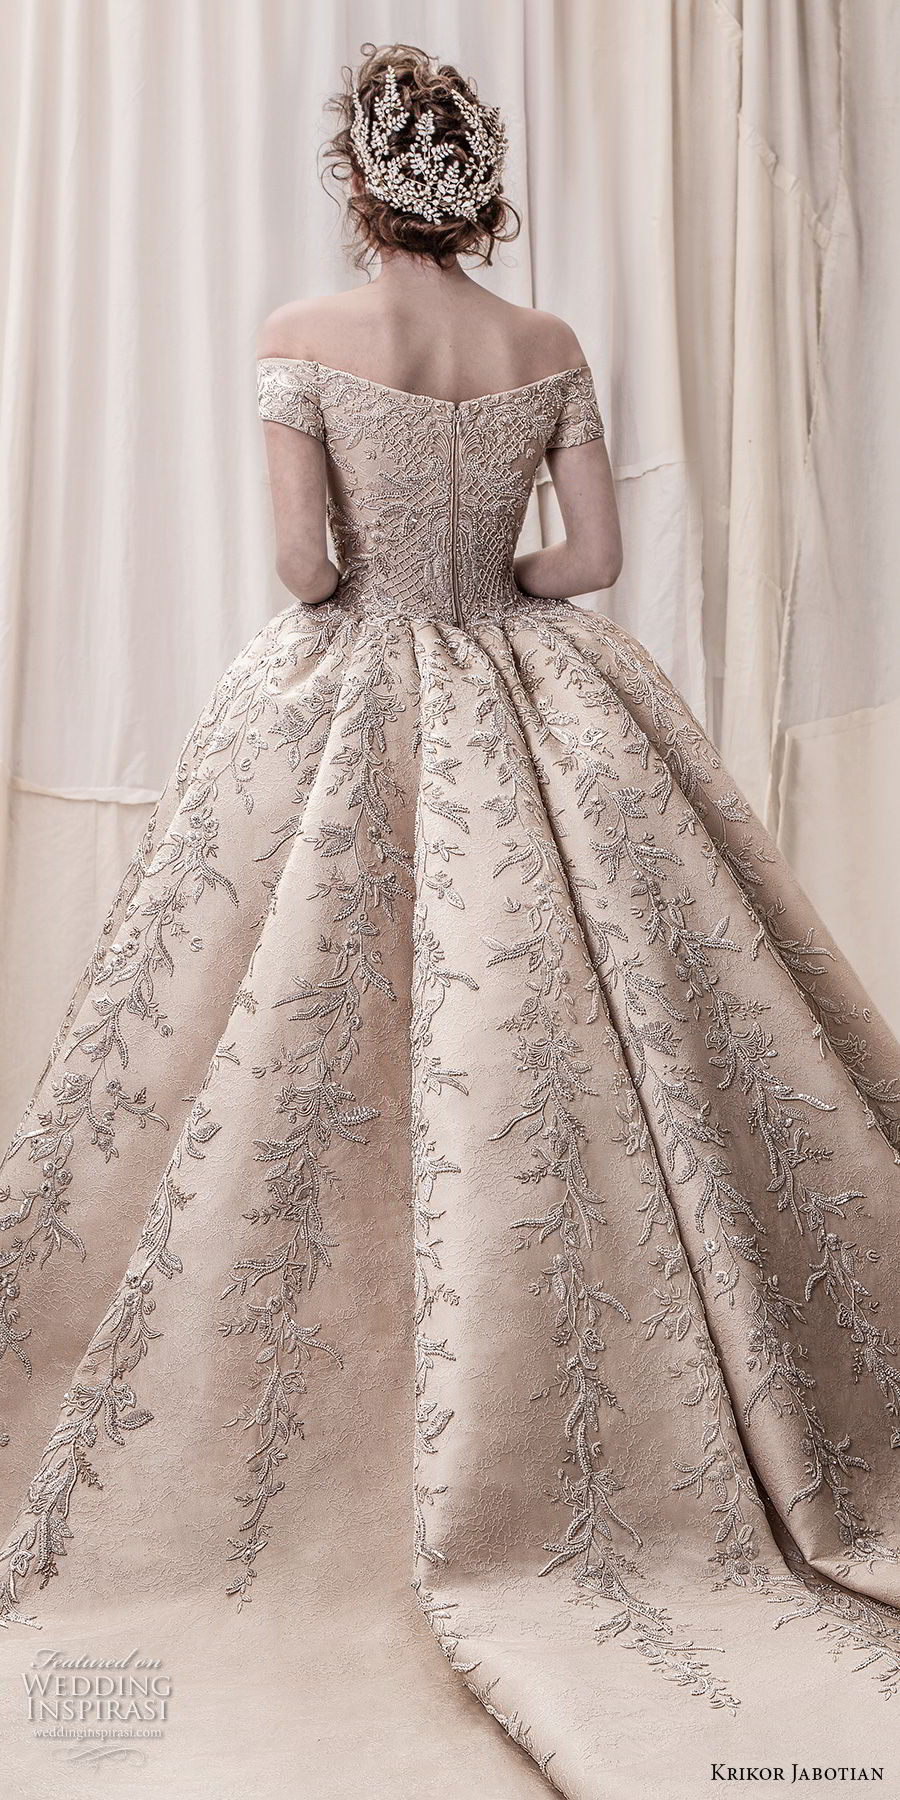 krikor jabotian spring 2018 bridal off the shoulder straight across neck full embellishment champagne gold princess ball gown a line wedding dress royal train (06) zbv